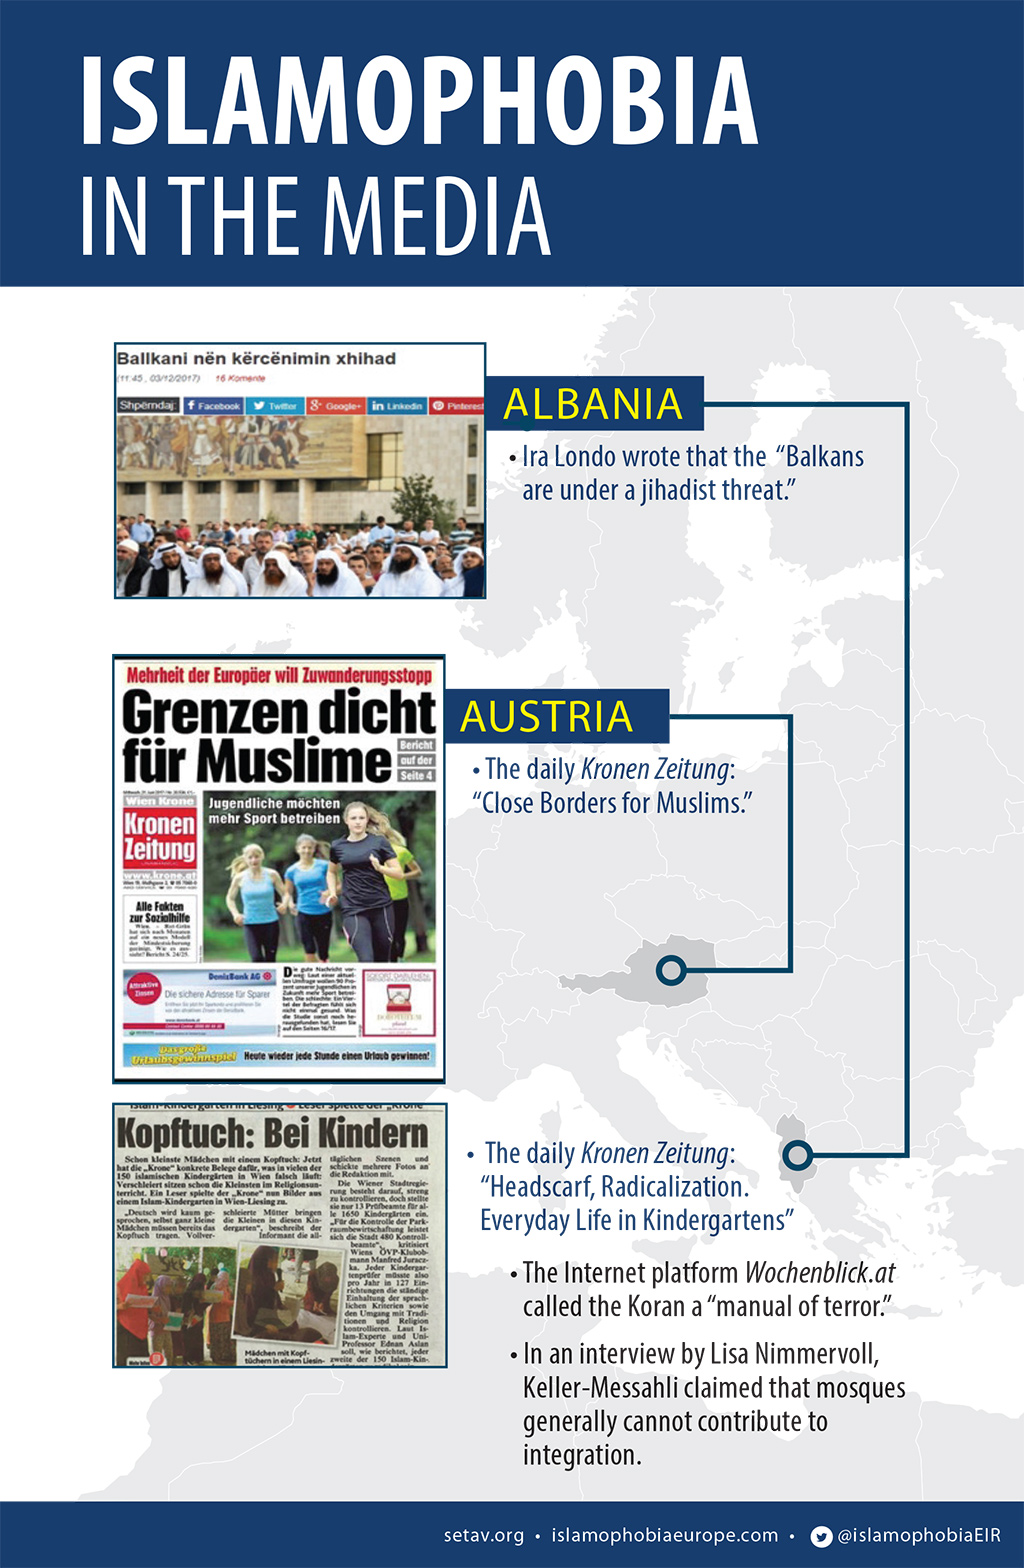 Islamohobia in the Media